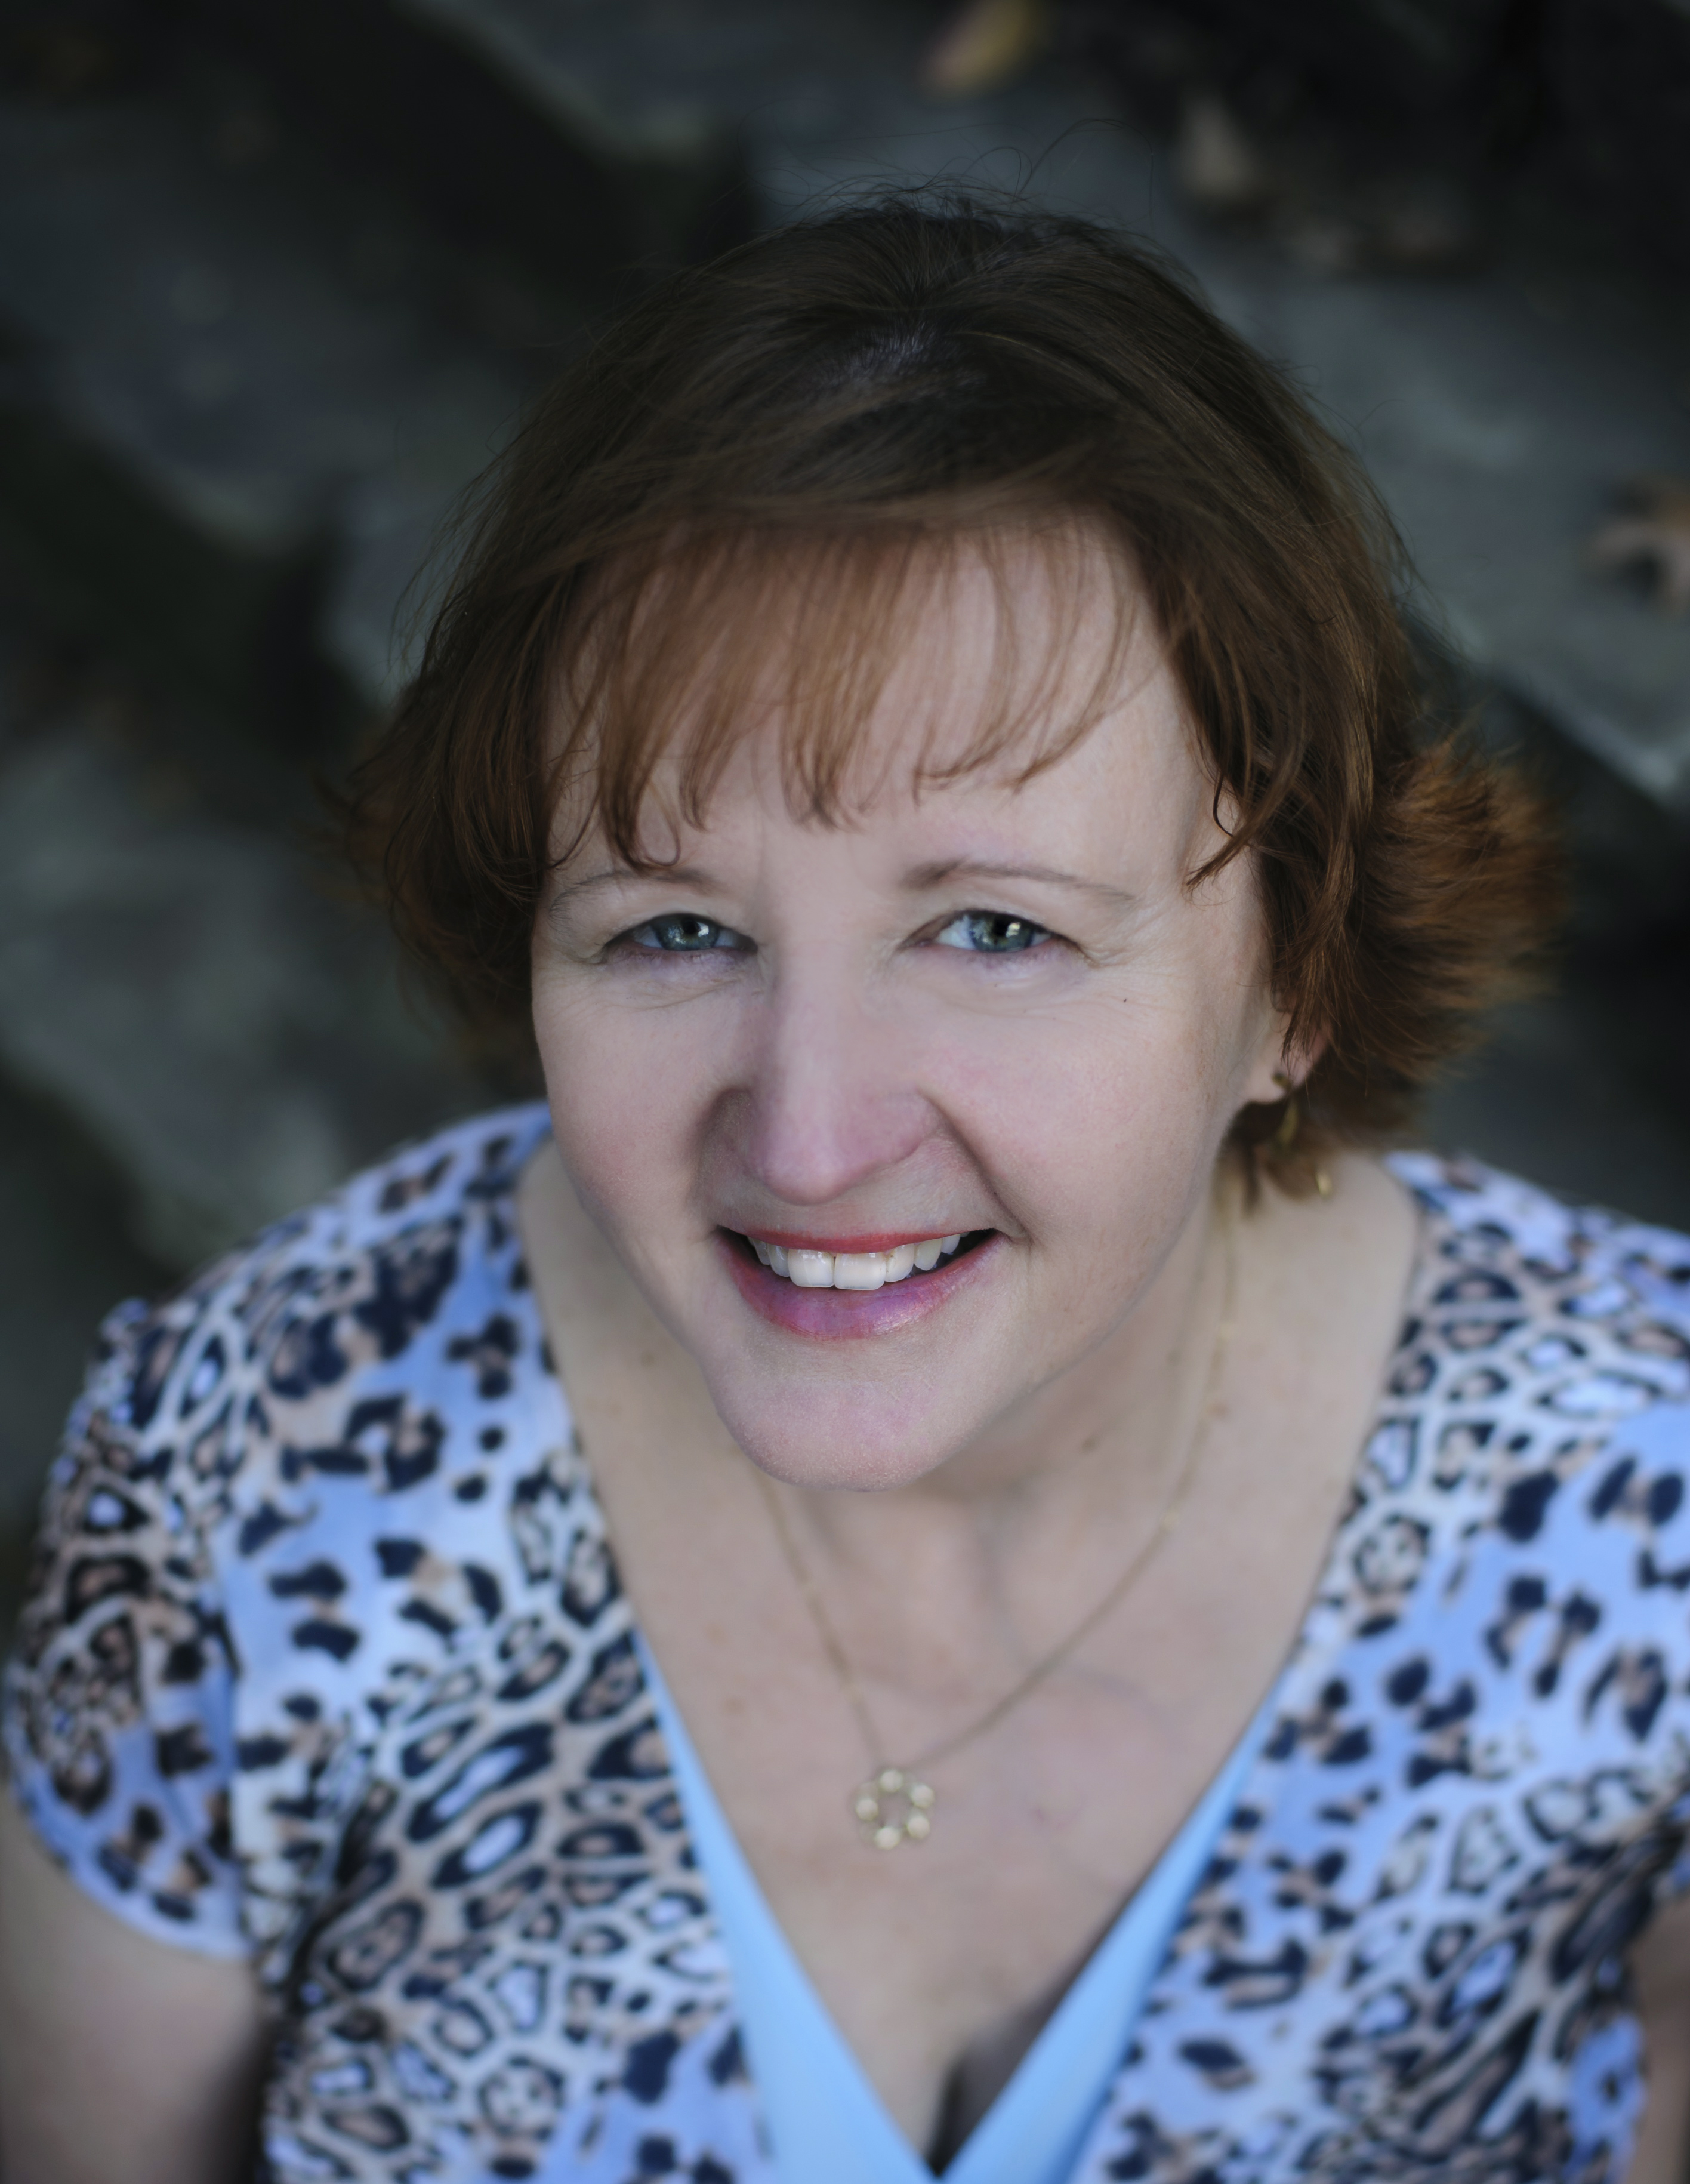 Sue Ann Is My Girlie I M A Strictly Loyalll To This: Sue-Anne MacGregor Biography